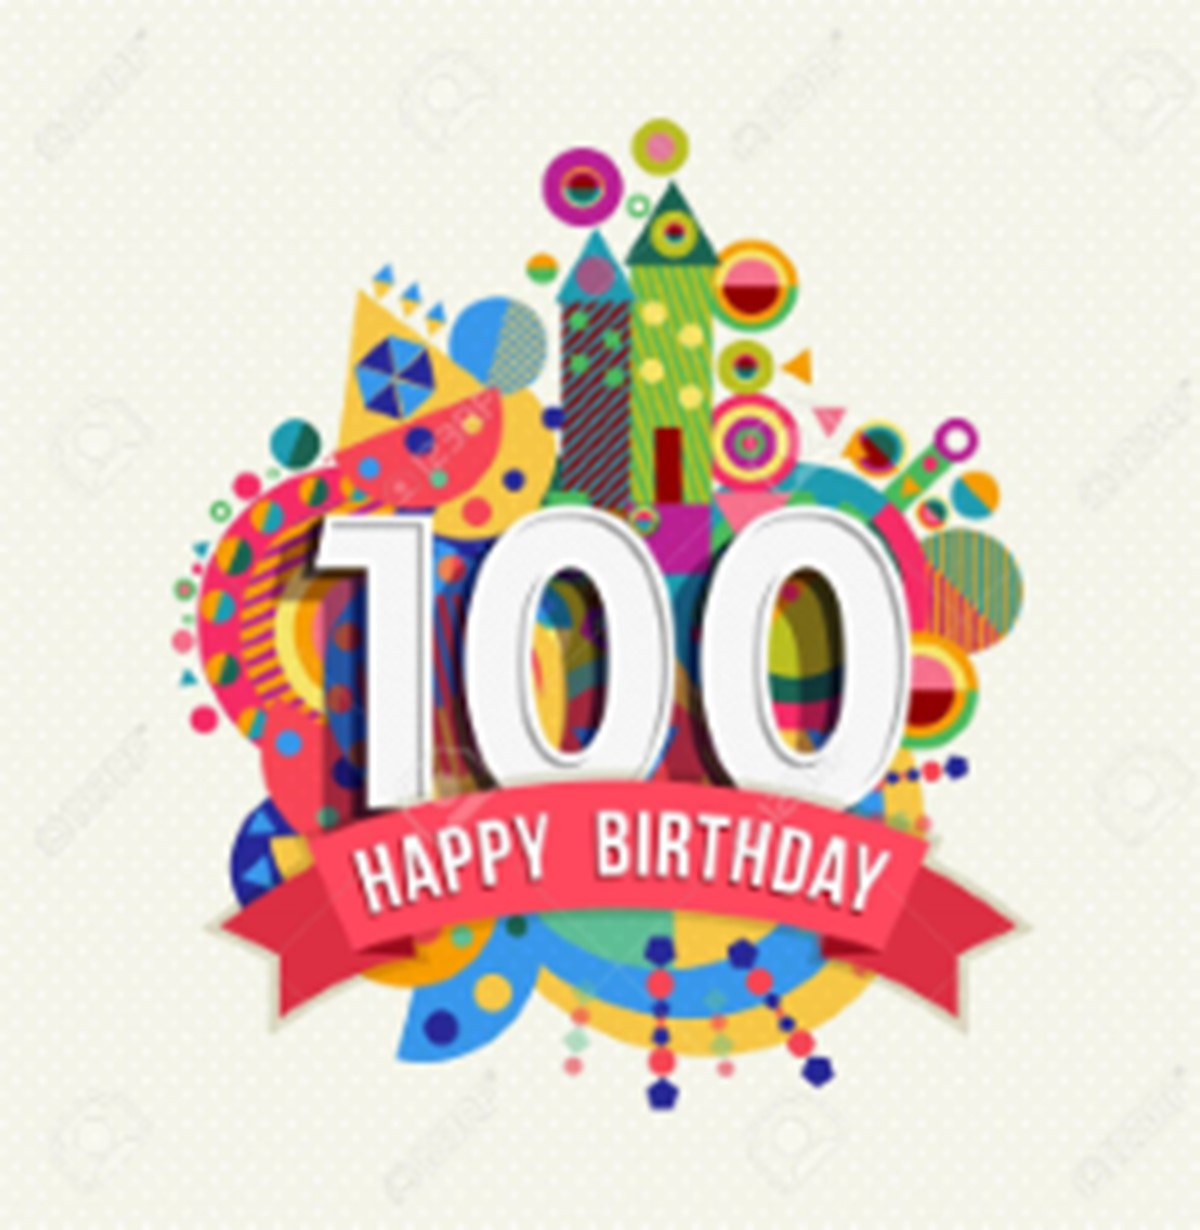 50199033 Happy Birthday One Hundred 100 Year Fun Celebration Greeting Card With Number Text Label And Colorfu